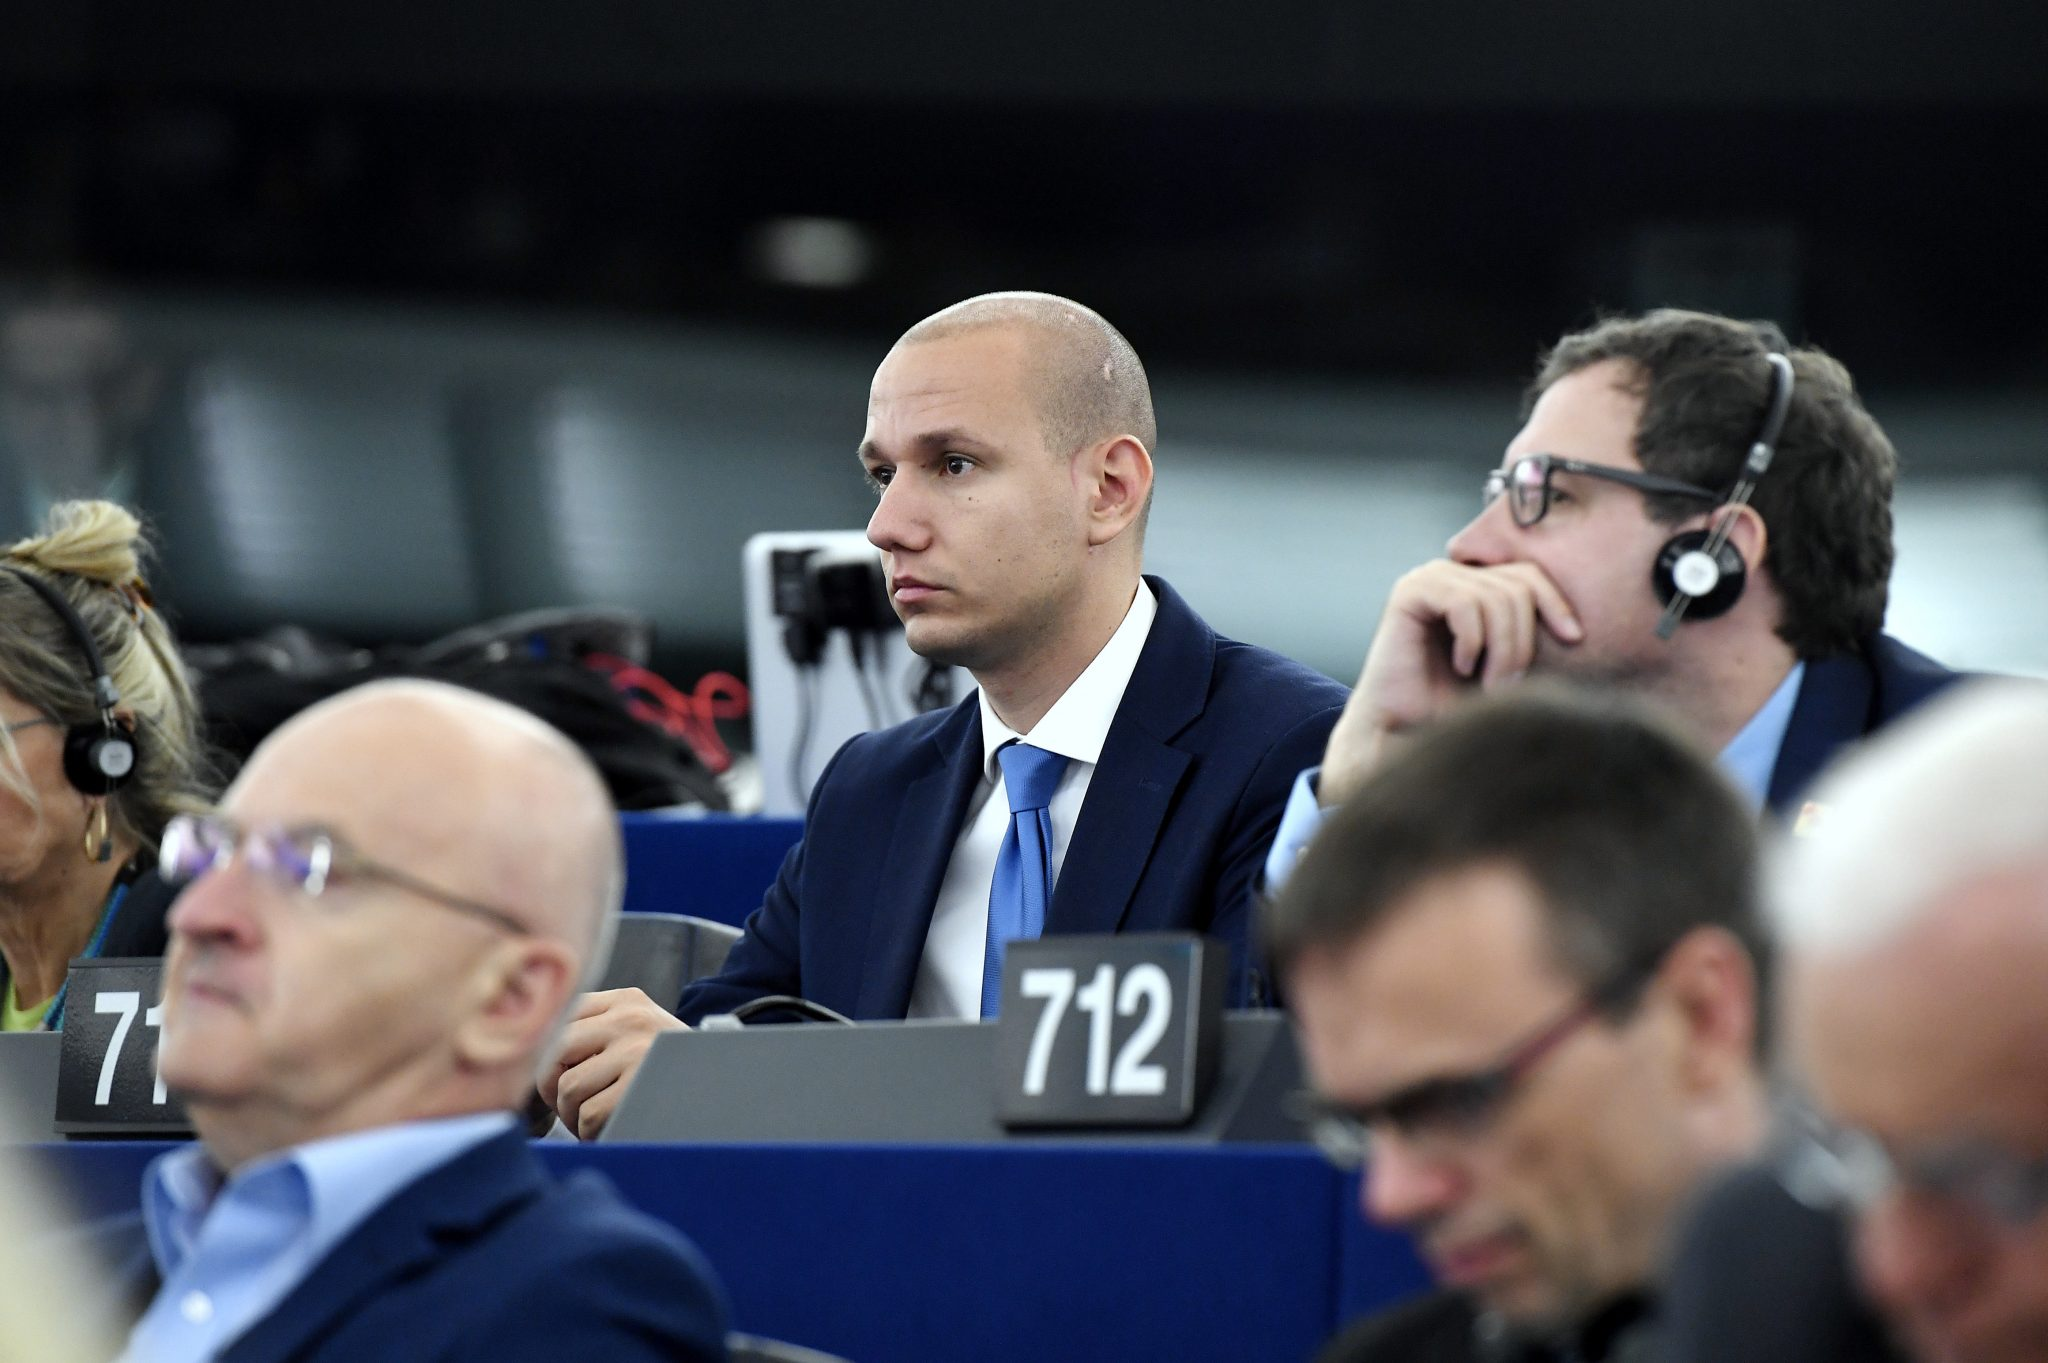 Opposition DK Urges EC to Make Participation in EPPO a Condition for EU Funding post's picture